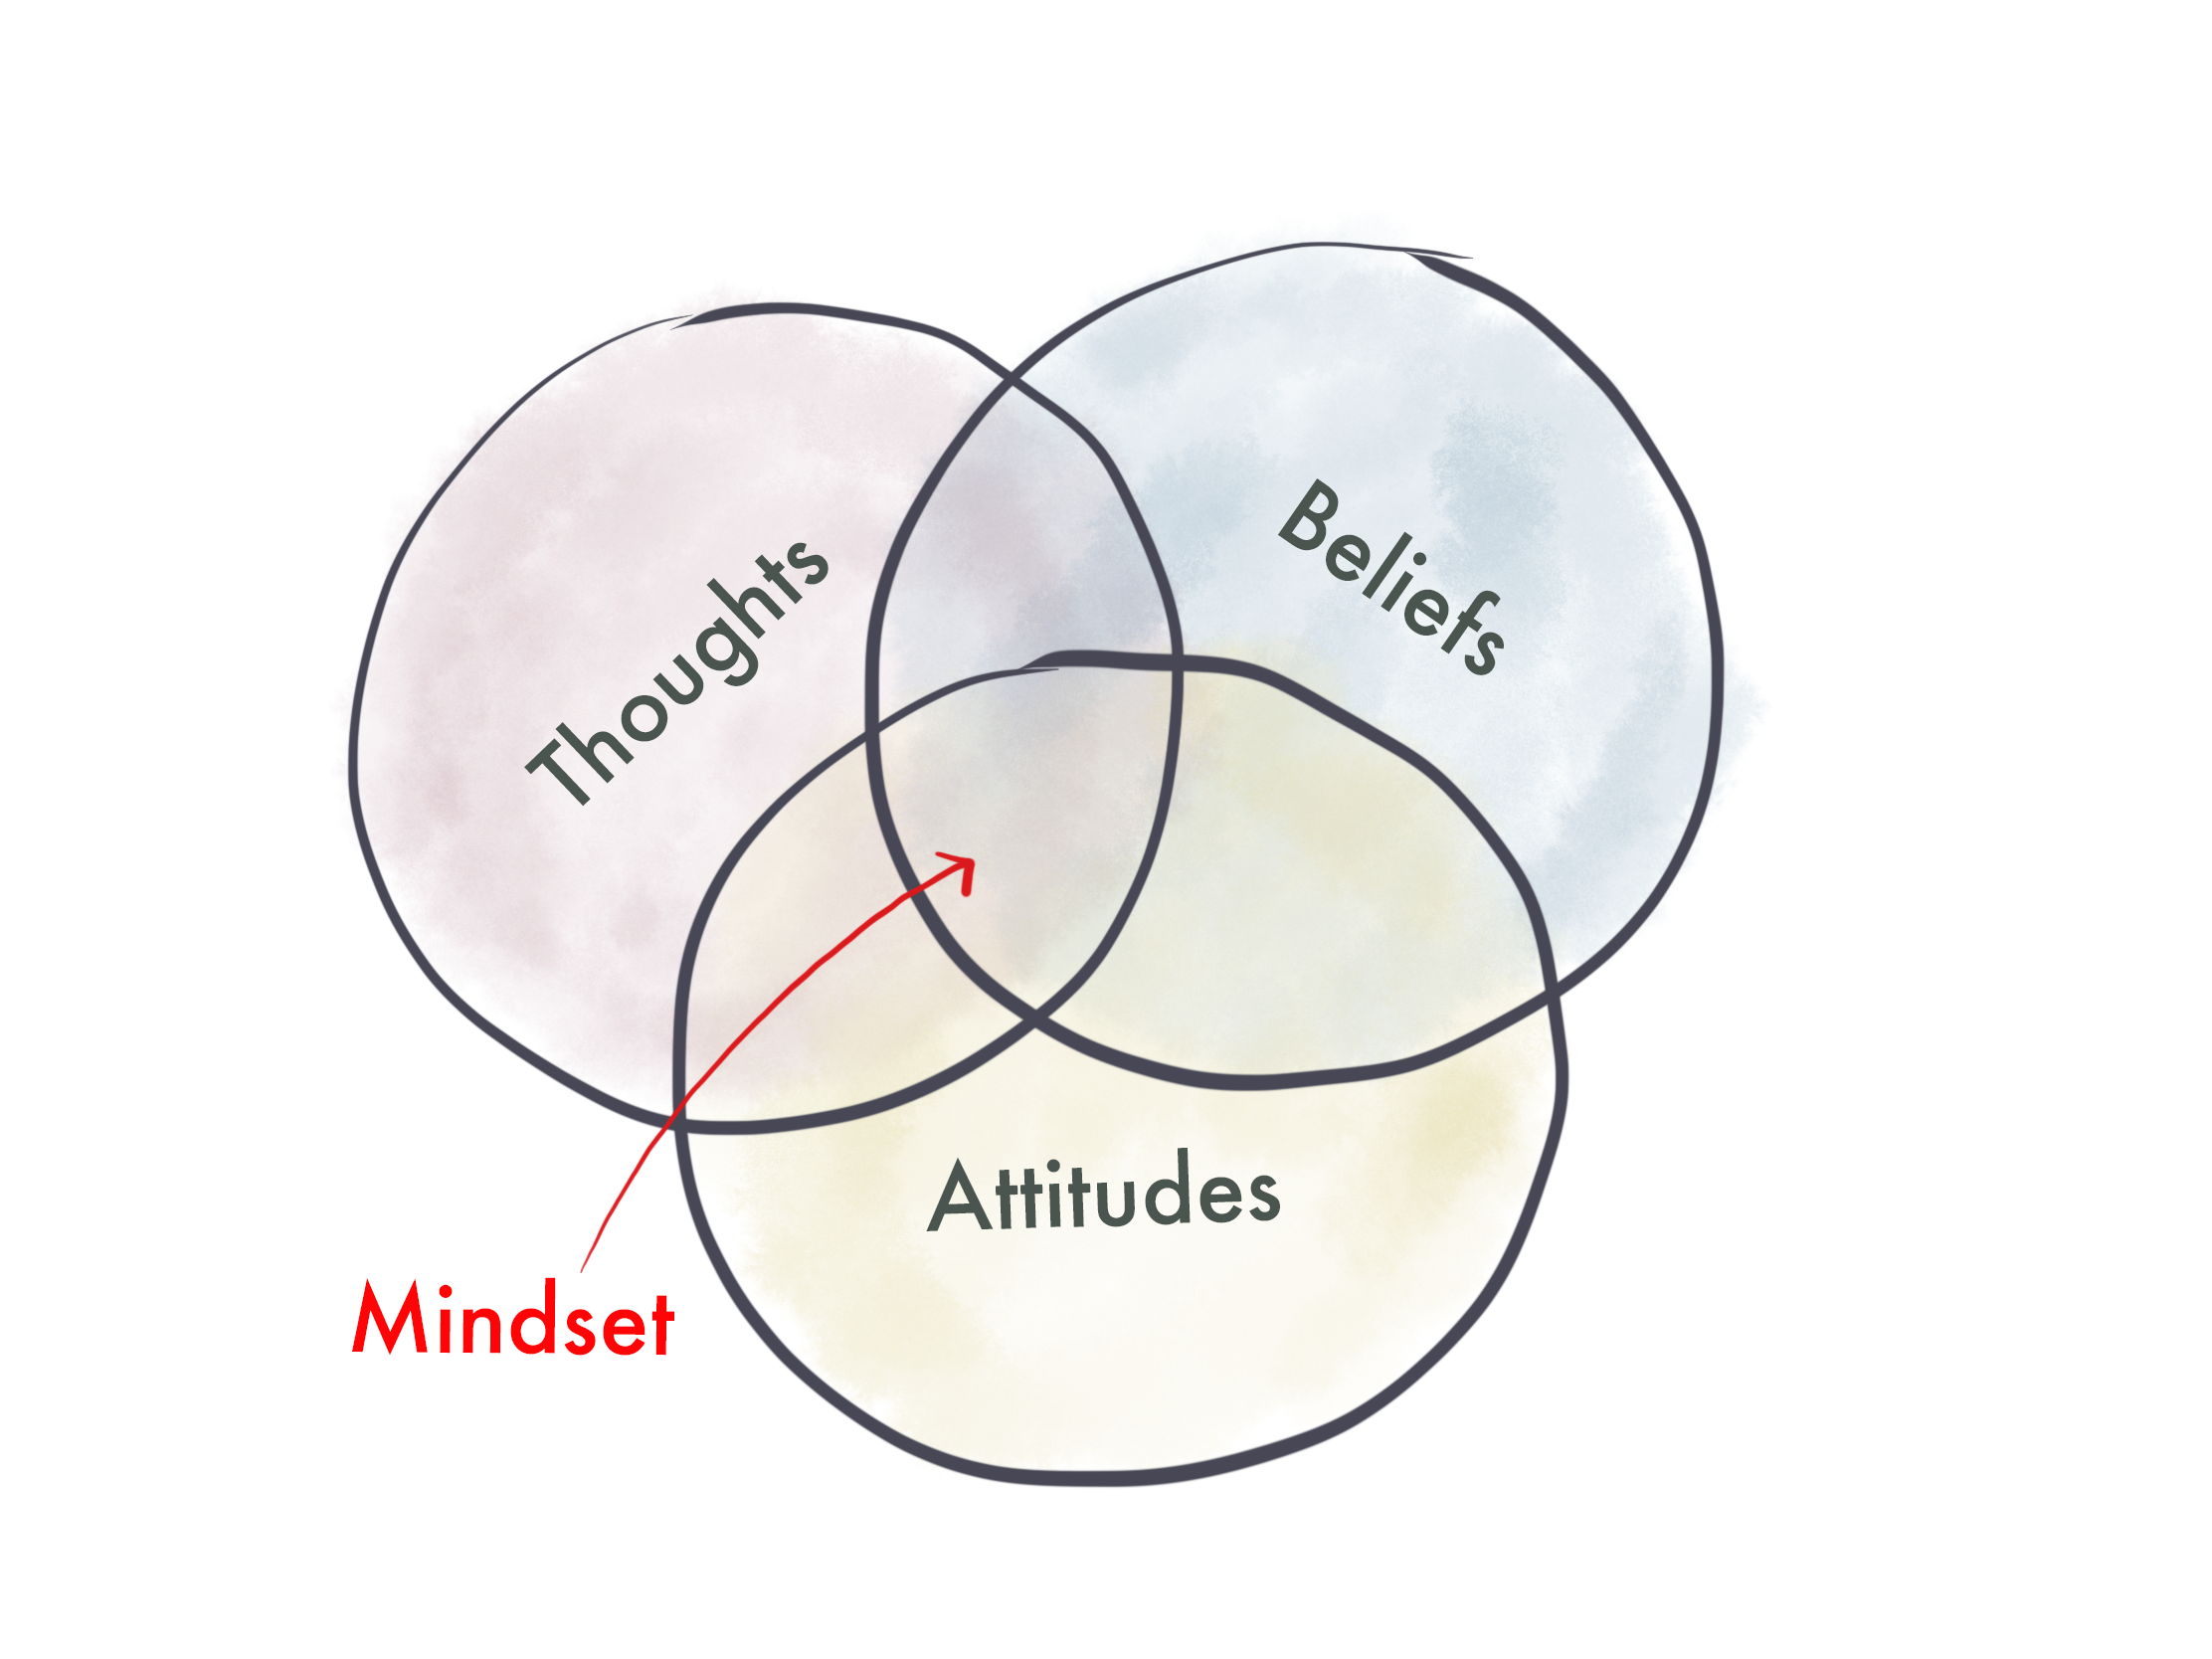 what is a mindset?